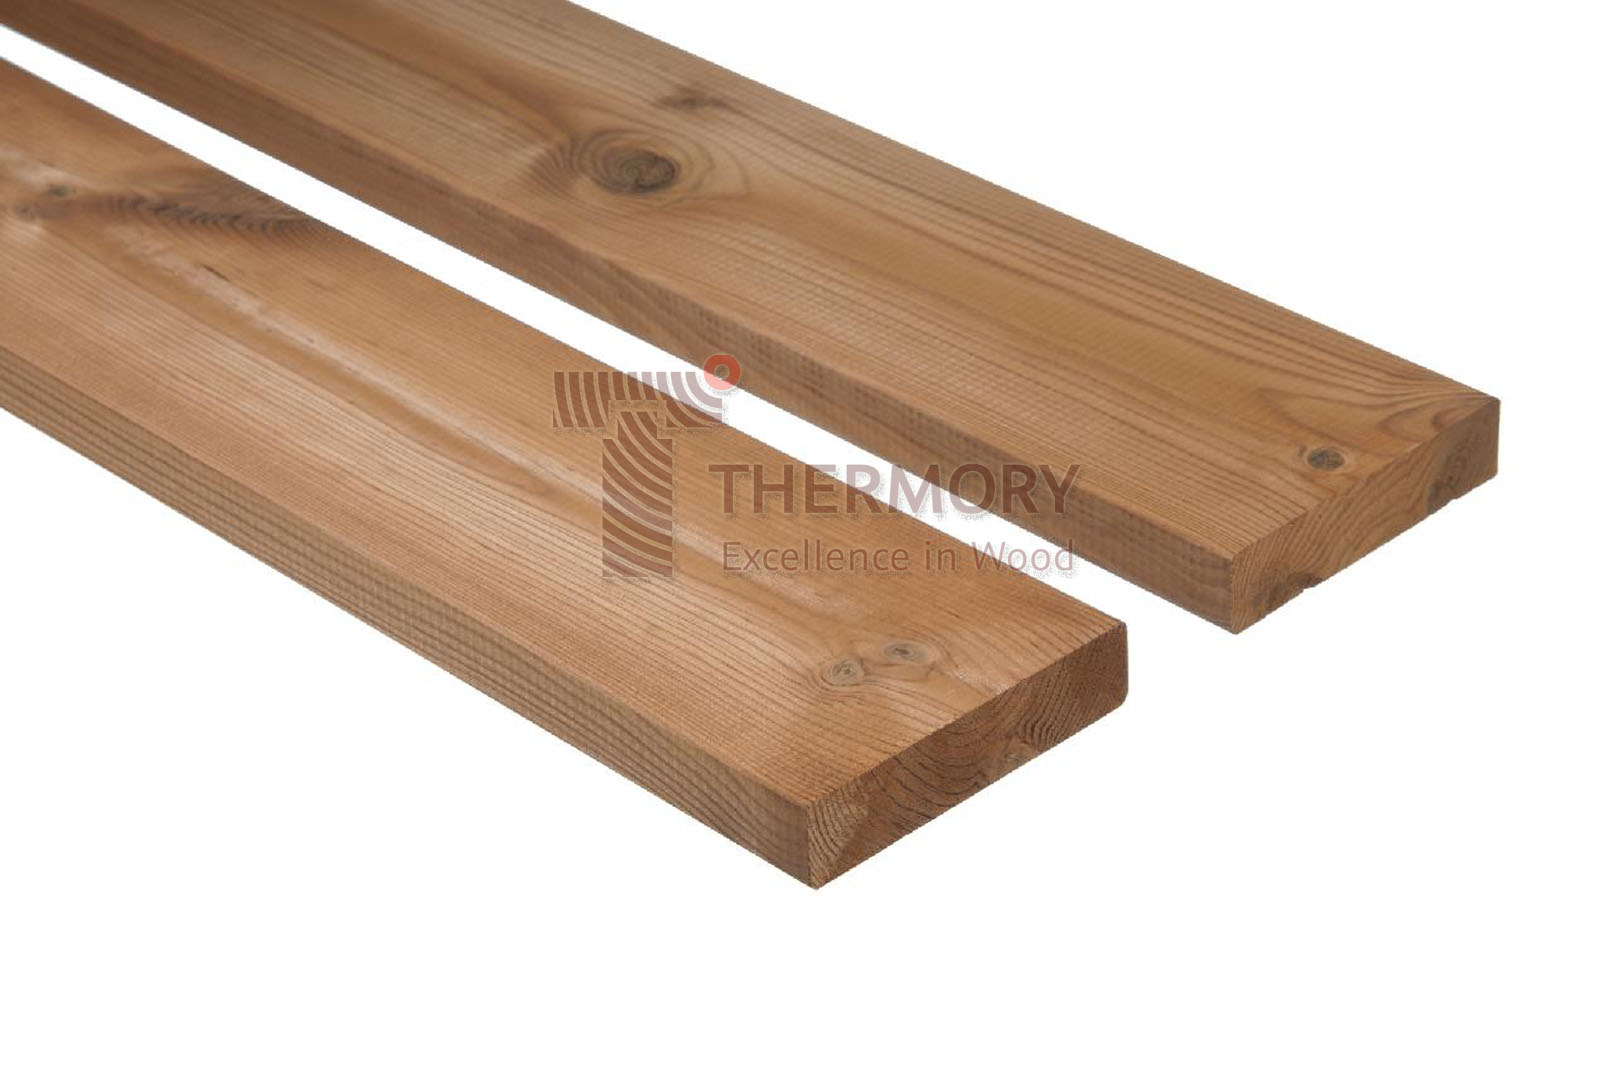 D4 26x115/140mm - The D4 profile is a classic decking board which does not require any additional fitting systems.